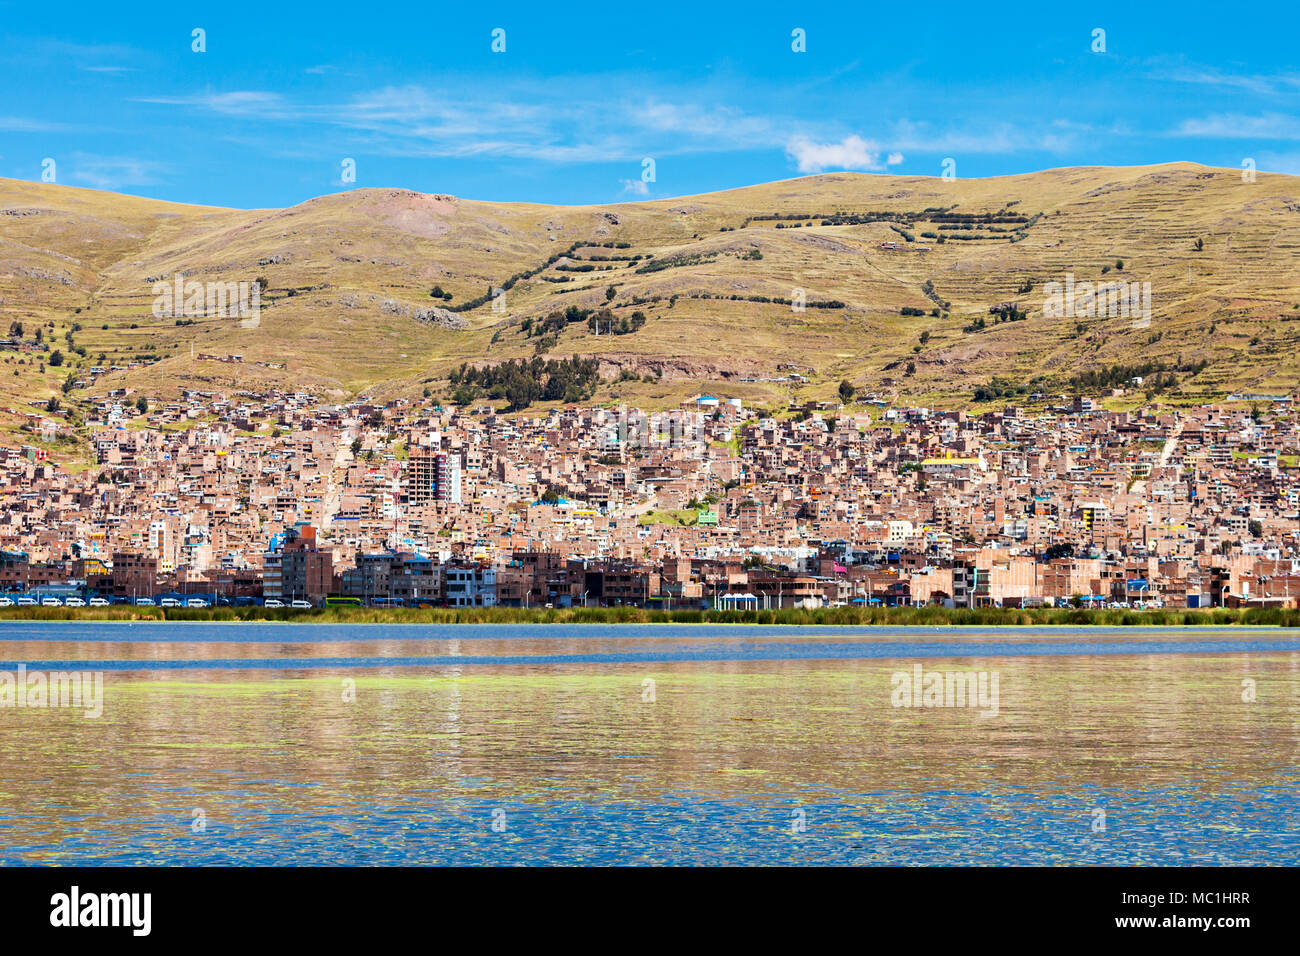 Puno panoramic view from Titicaca lake, Peru - Stock Image